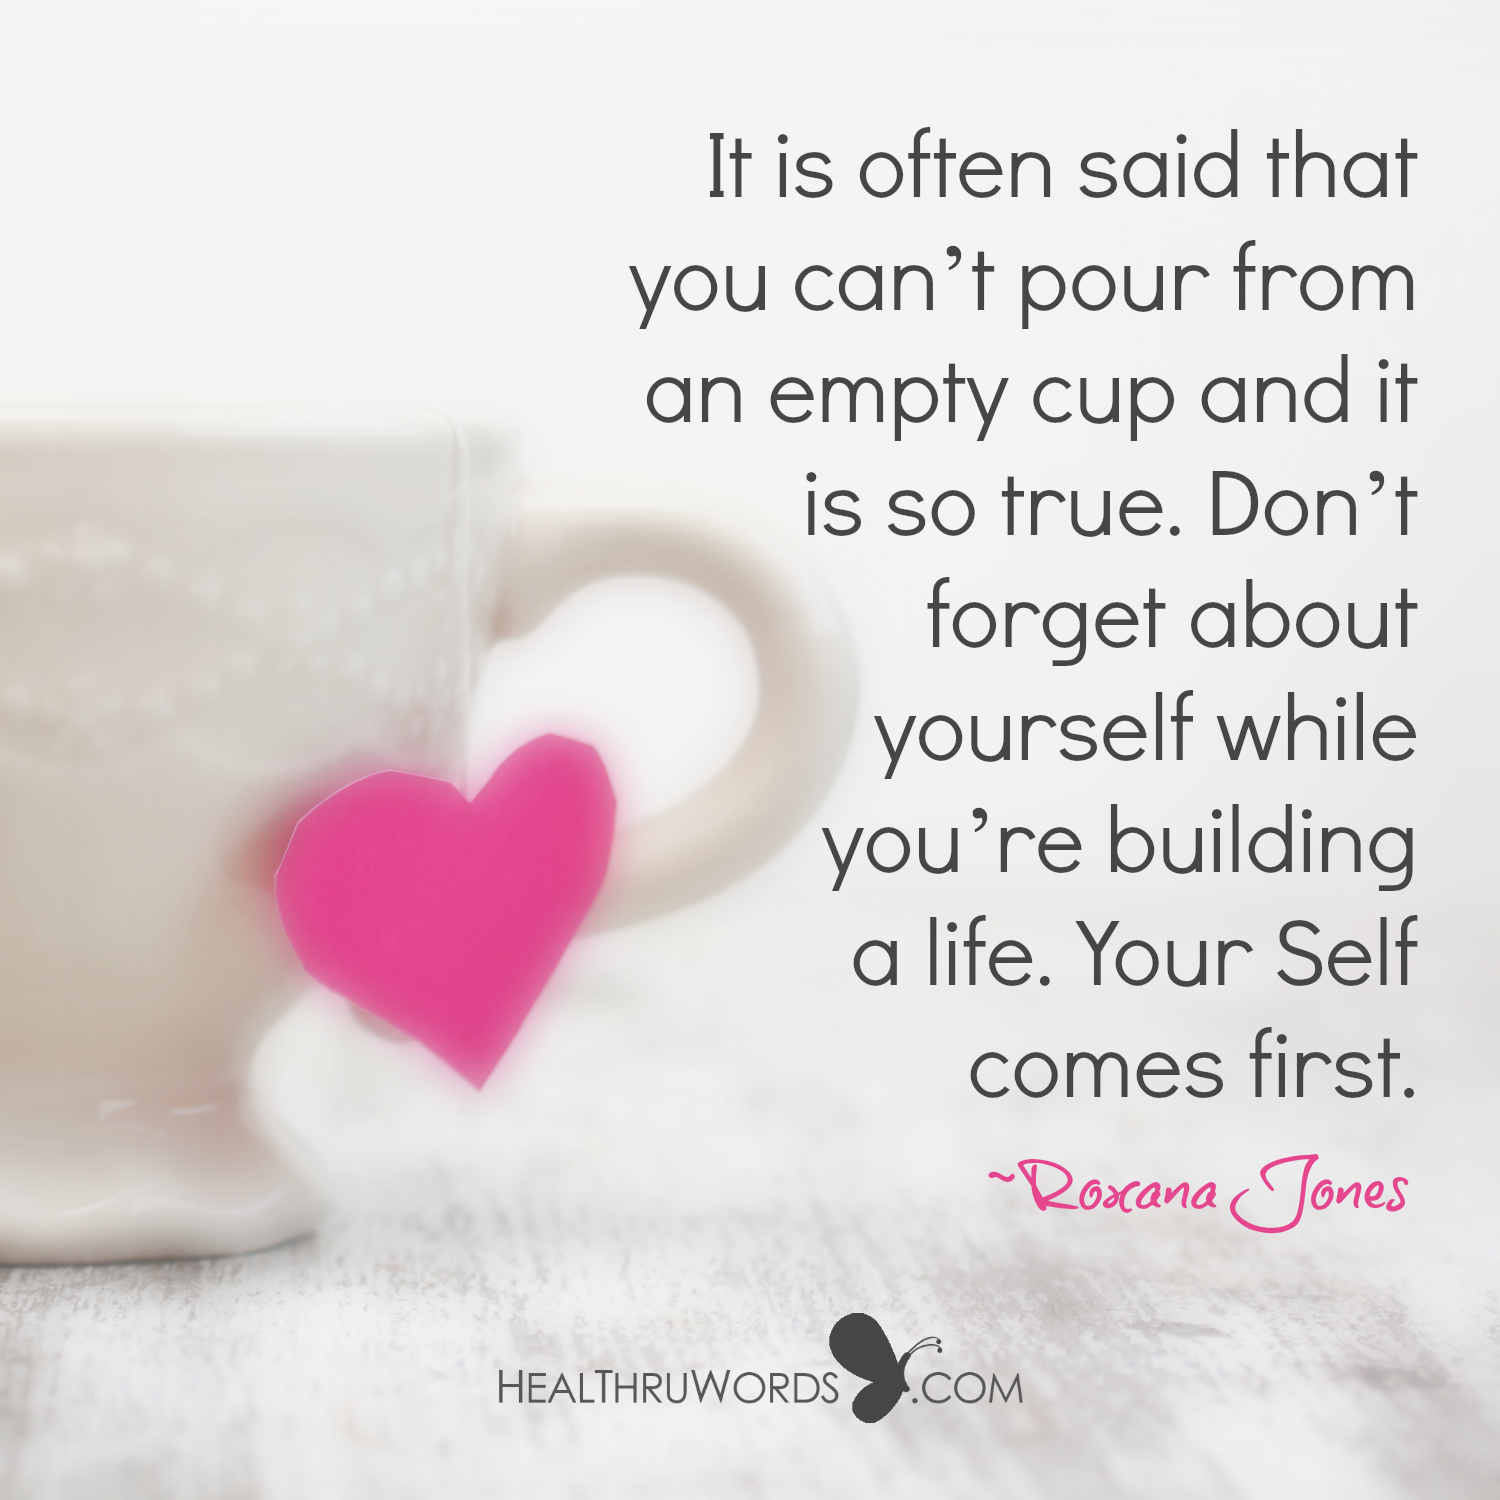 Inspirational Image: First Self